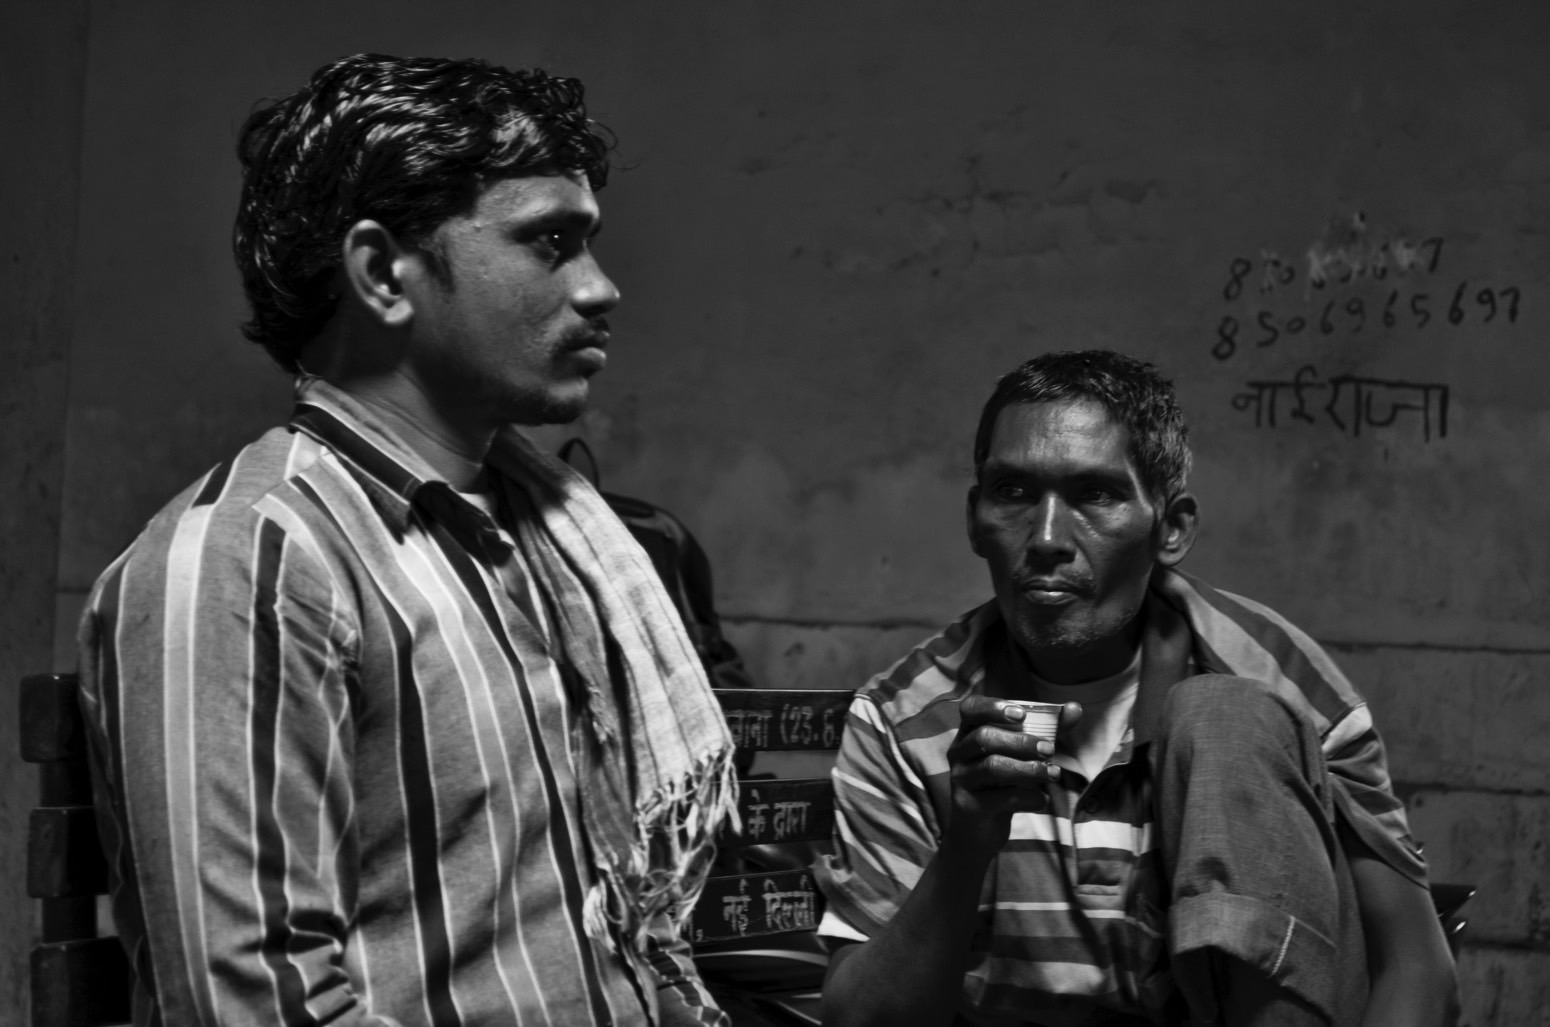 CNG workers in the middle of a conversation. Credit: Wamika Singh